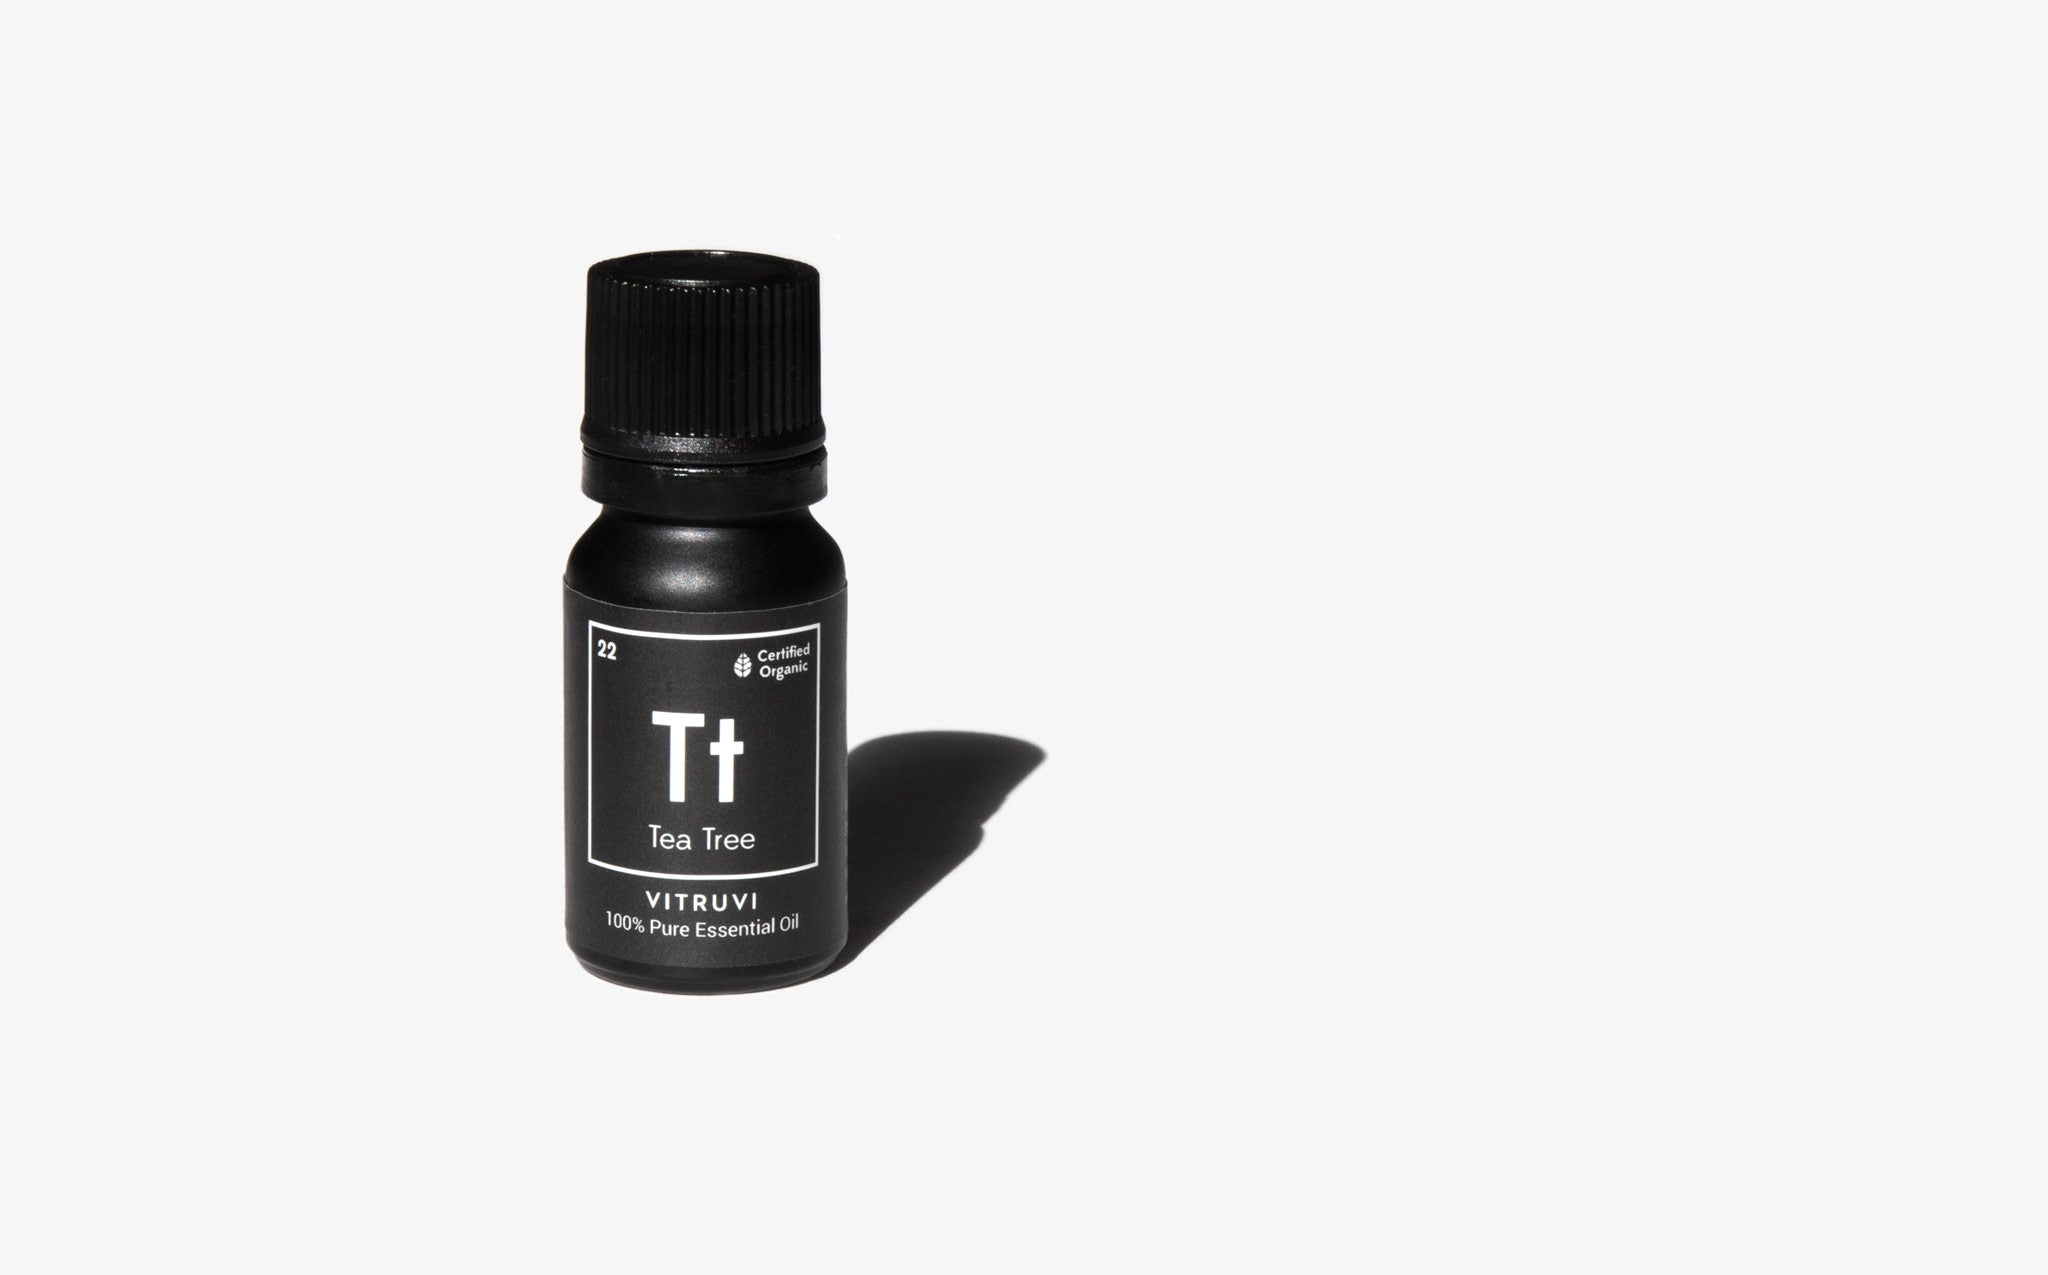 Vitruvi Organic Tea Tree Essential Oil